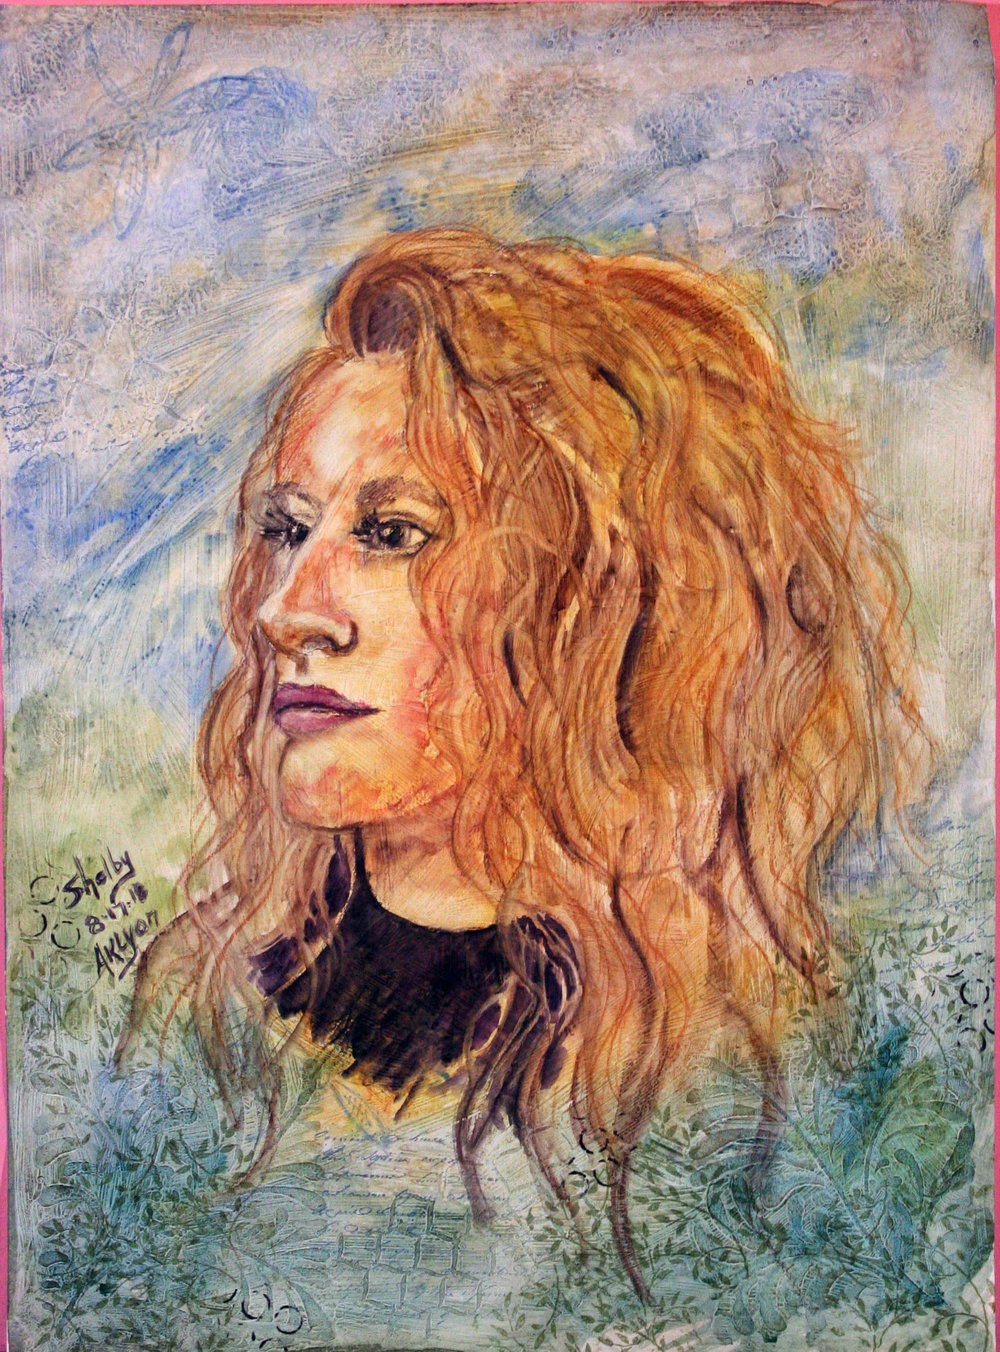 Anne Lyon did this mixed media portrait.